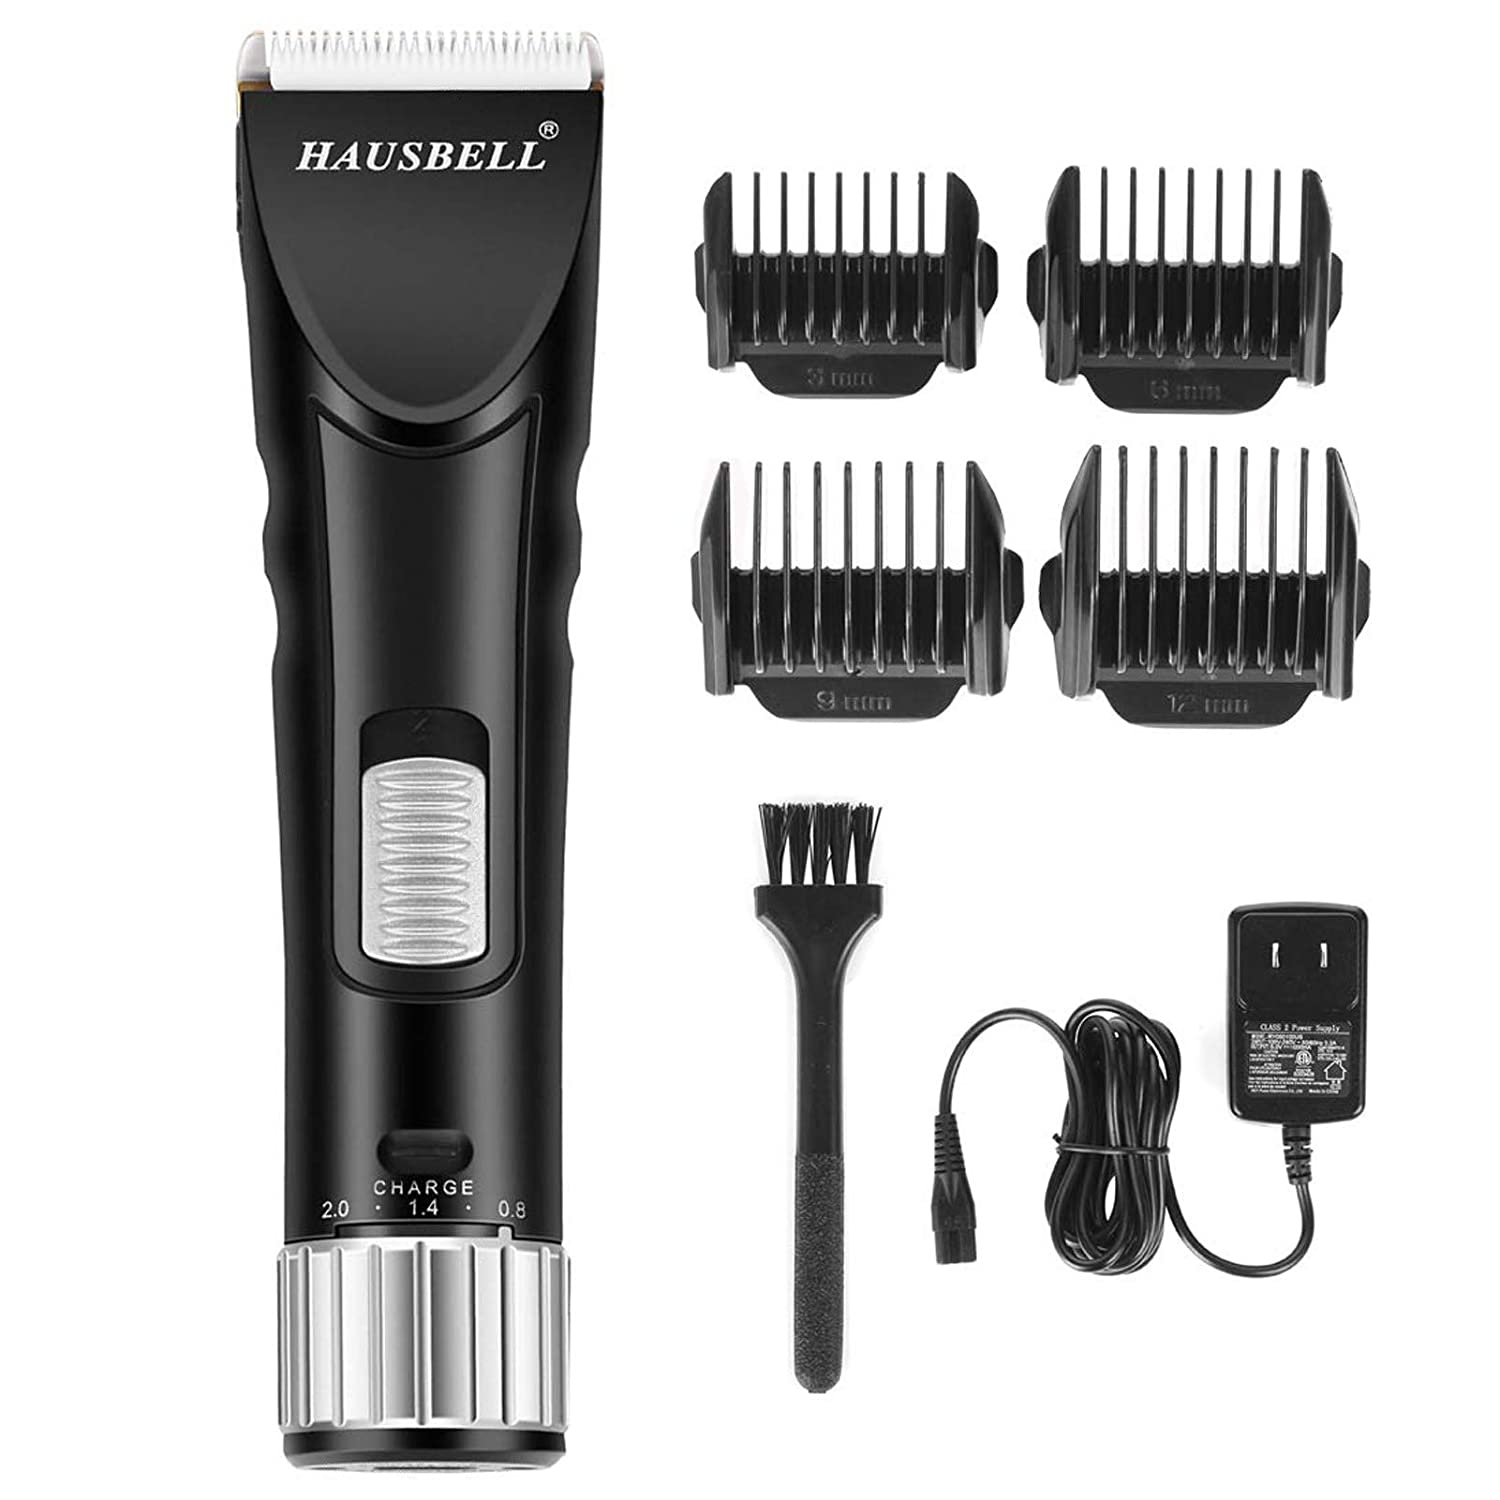 HAUSBELL Hair Clippers, Hair Trimmer, Beard Trimmer for Men, Cordless Rechargeable Mustache Trimmers, Hair Cutting Kit, Barber Clippers, Grooming Kit for Men, Shaver for Head, Face, Beard and Body